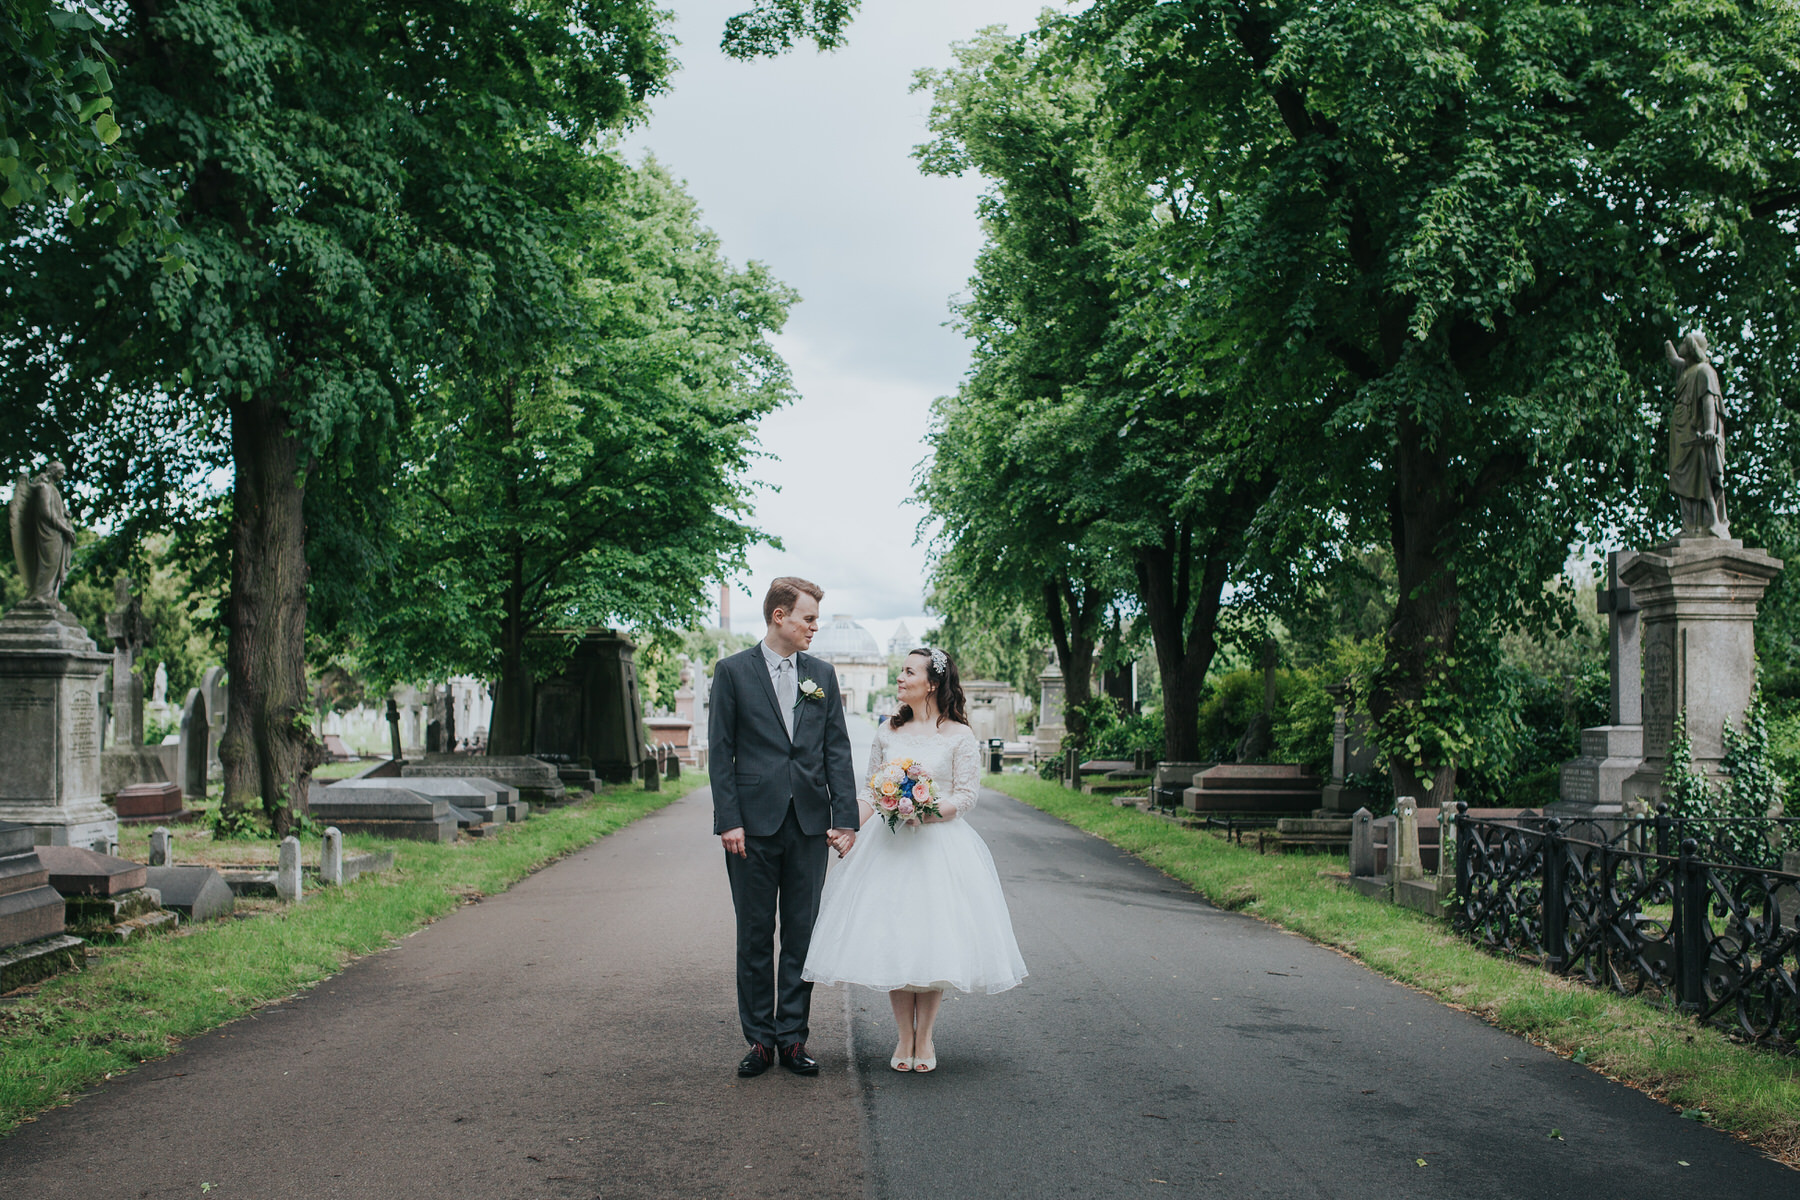 150 groom bride wedding portraits Brompton Cemetery.jpg